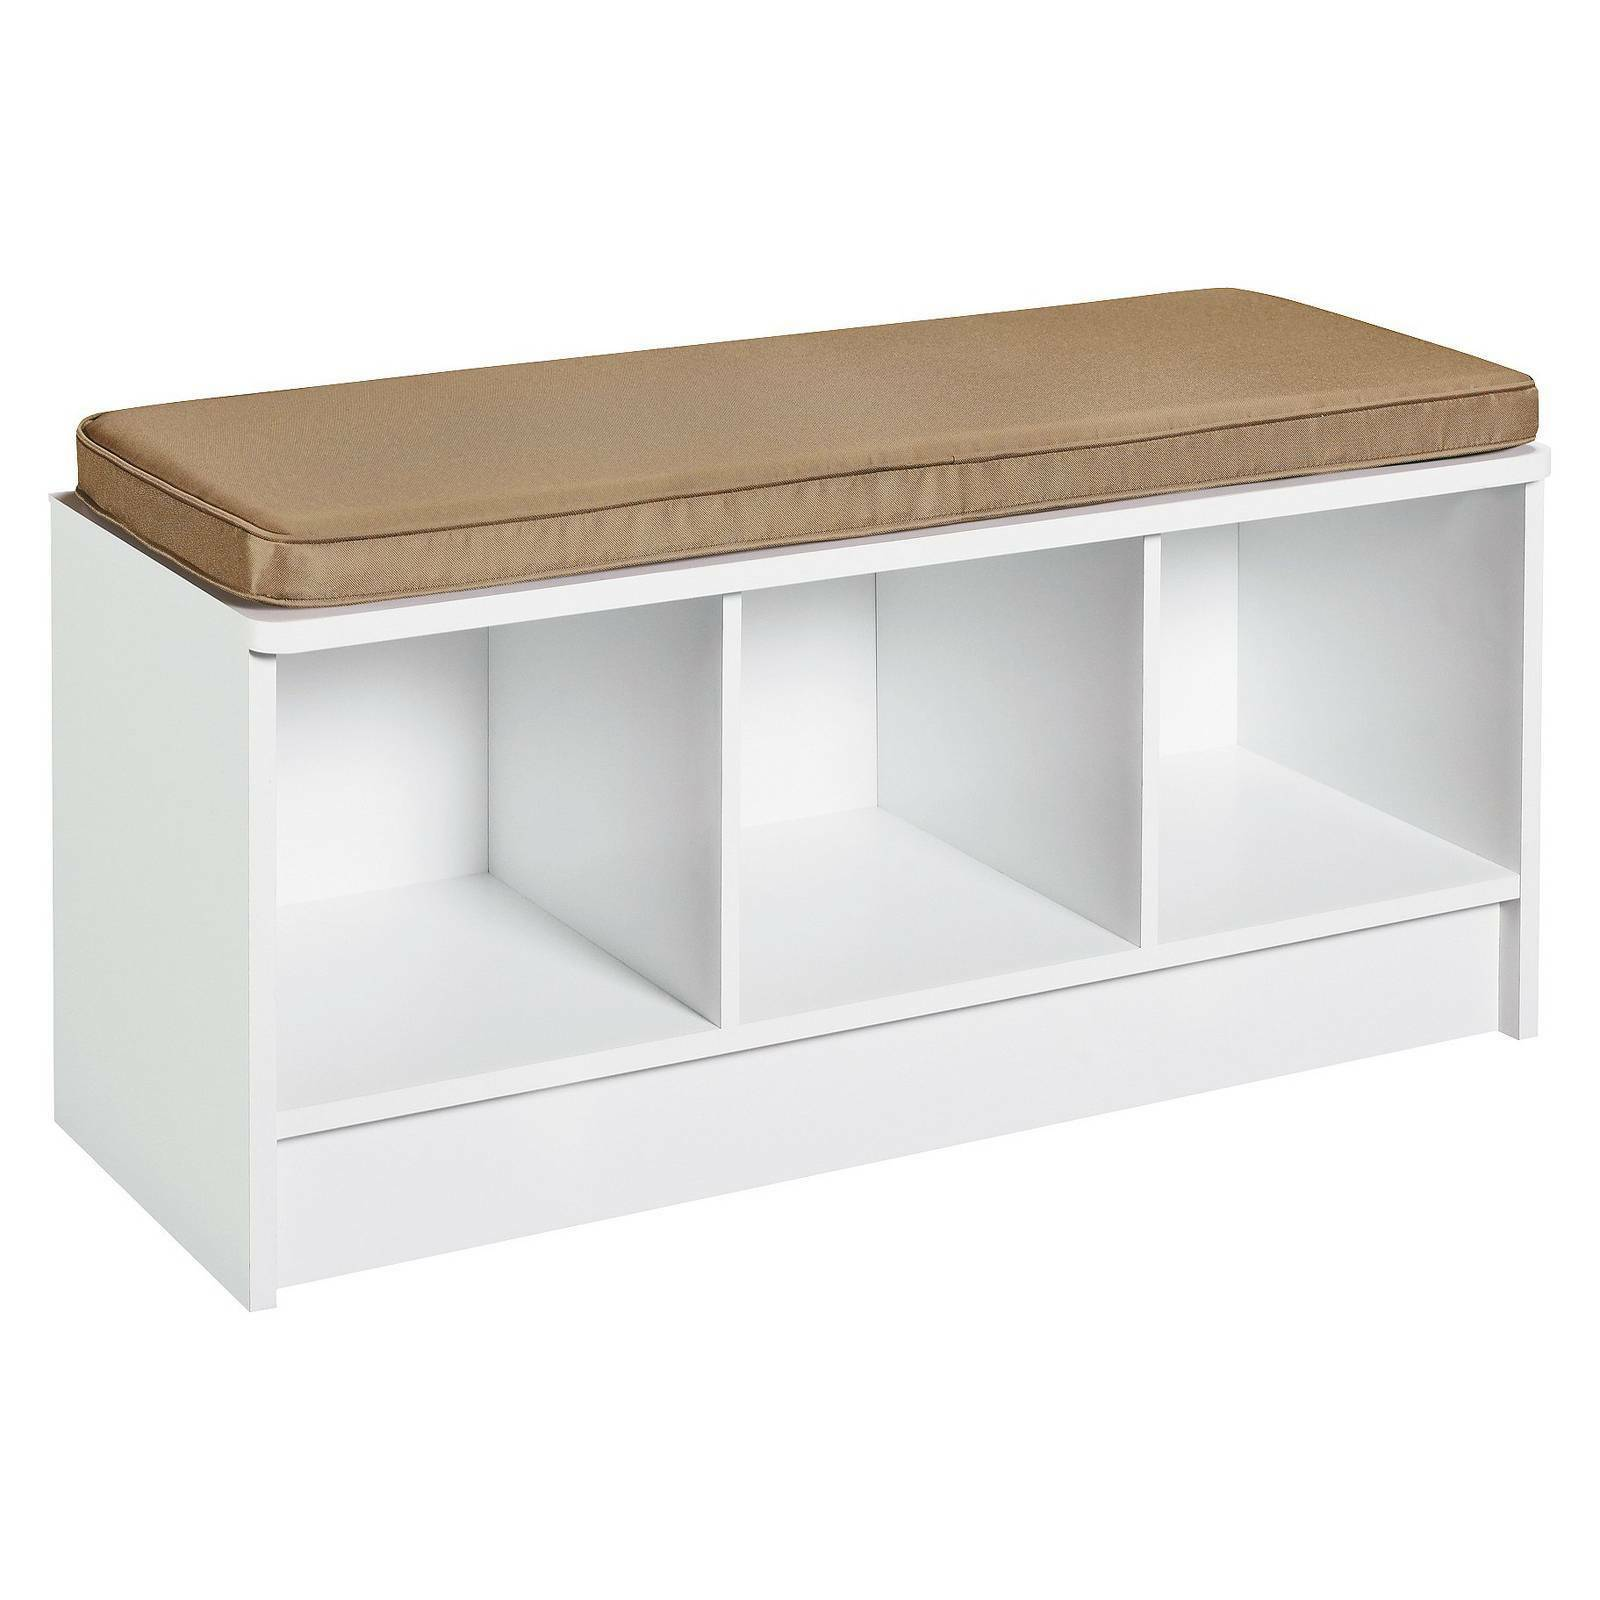 home design storage cube benches and stools wayfair bench reviews axtell wildon decorative furniture